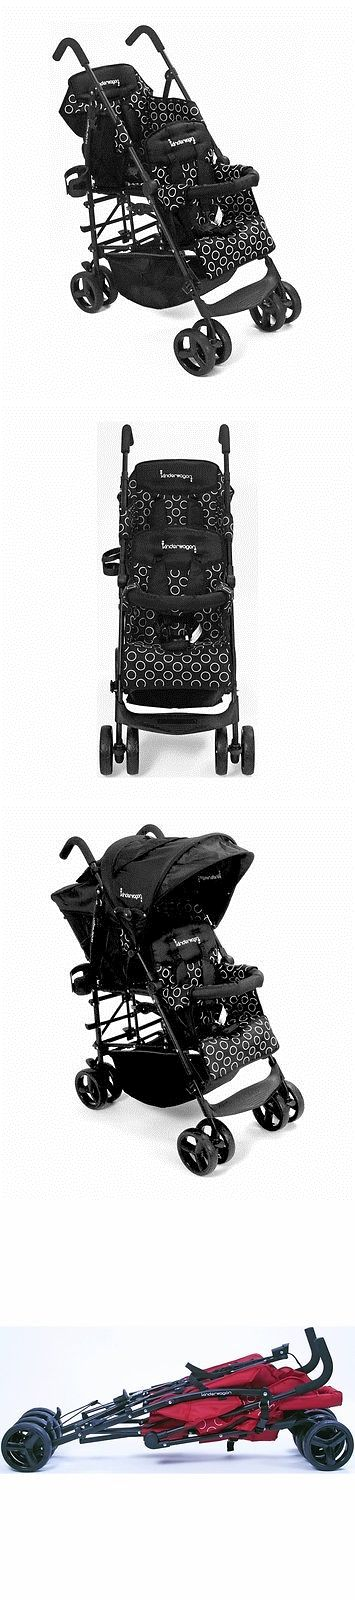 Other Baby Gear 100224: Kinderwagon Hop Tandem Double Umbrella Stroller In Black Brand New! Open Box -> BUY IT NOW ONLY: $259.99 on eBay!